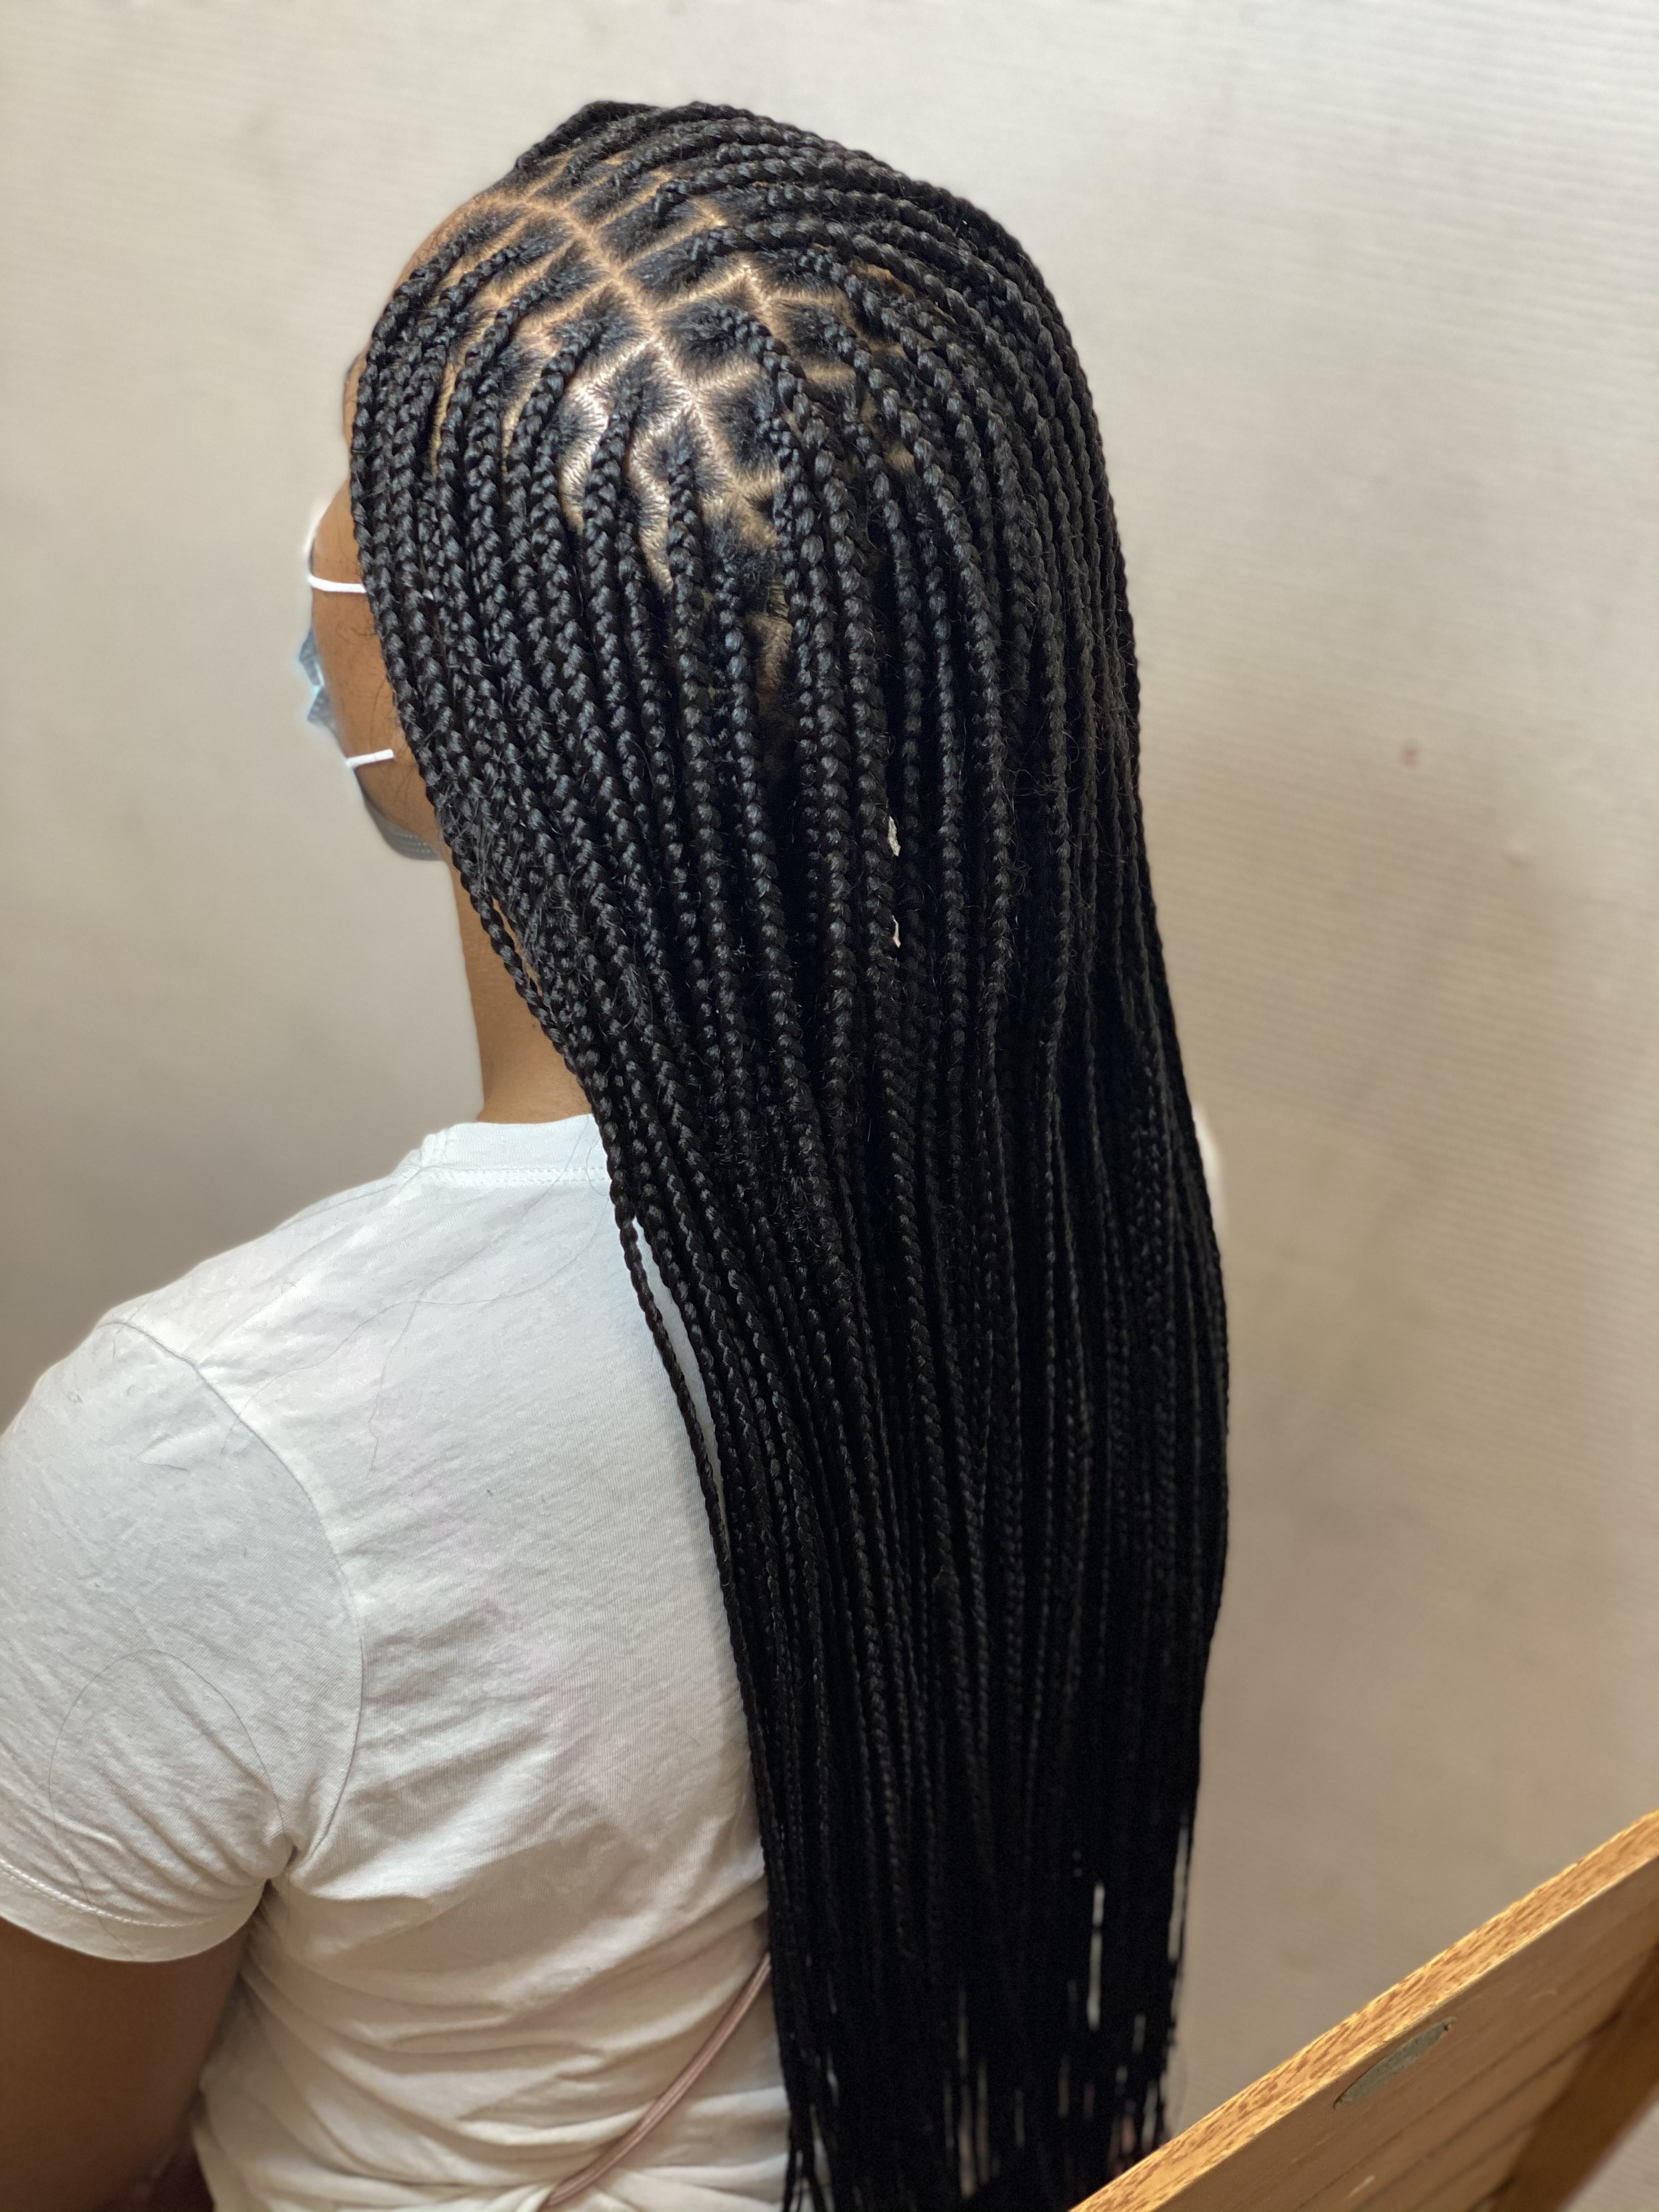 salon de coiffure afro tresse tresses box braids crochet braids vanilles tissages paris 75 77 78 91 92 93 94 95 HFGSCYJY